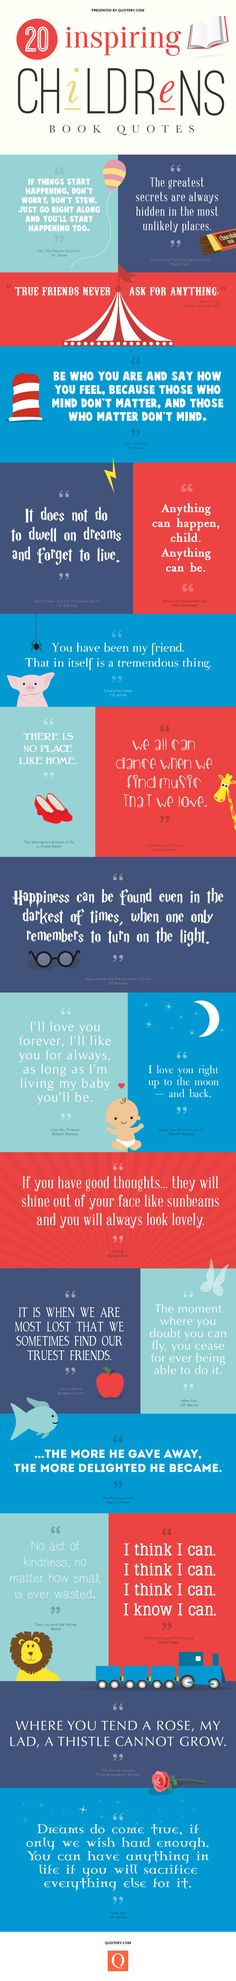 20 Inspiring Children's Book Quotes